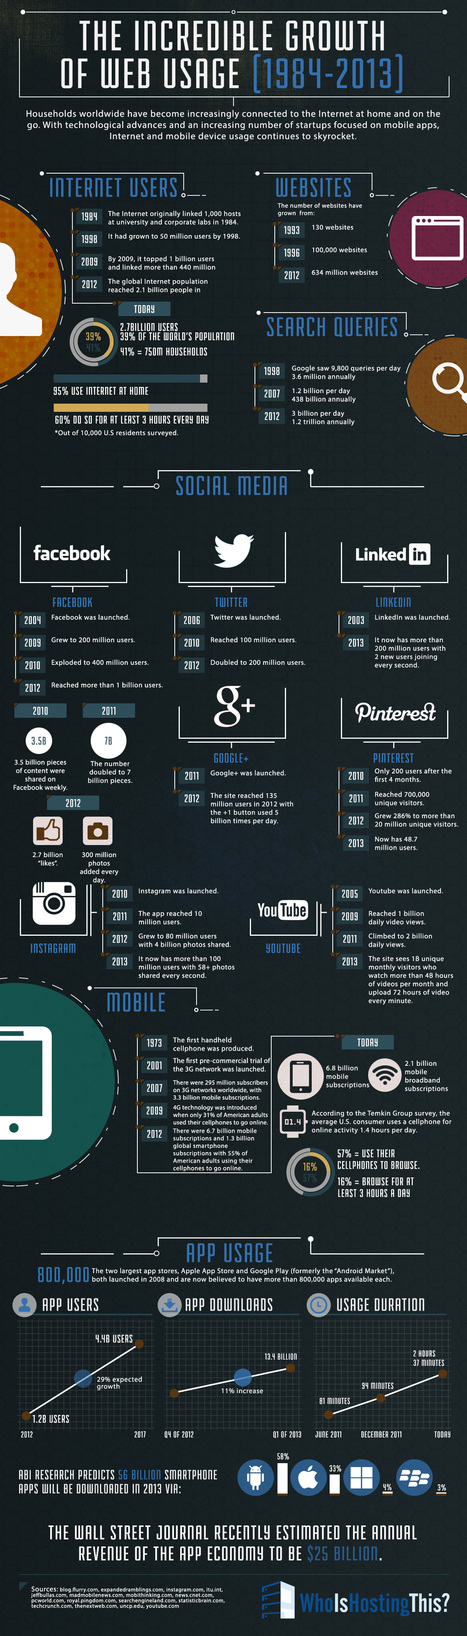 Infographic: The Incredible Growth of Web Usage [1984-2013] | Beyond Marketing | Scoop.it